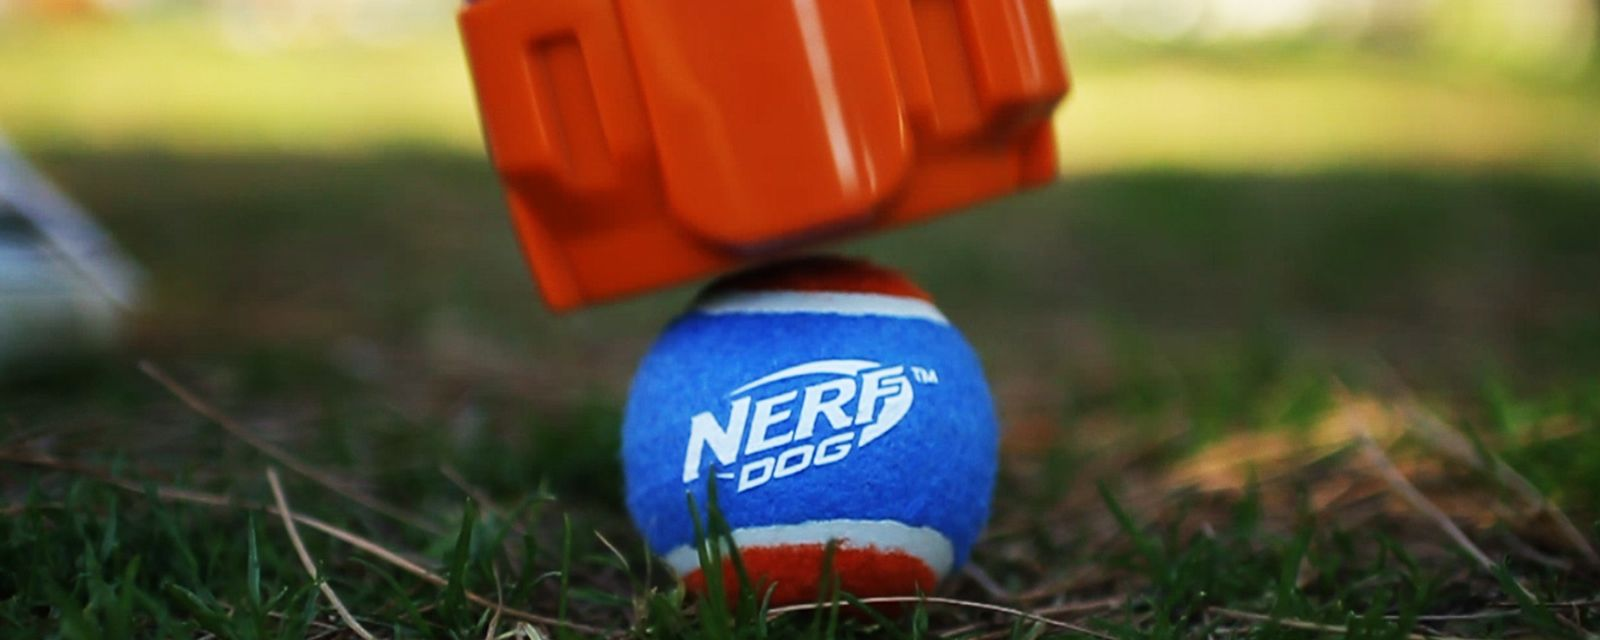 Community | NERF DOG | Gramercy Products – Our Values